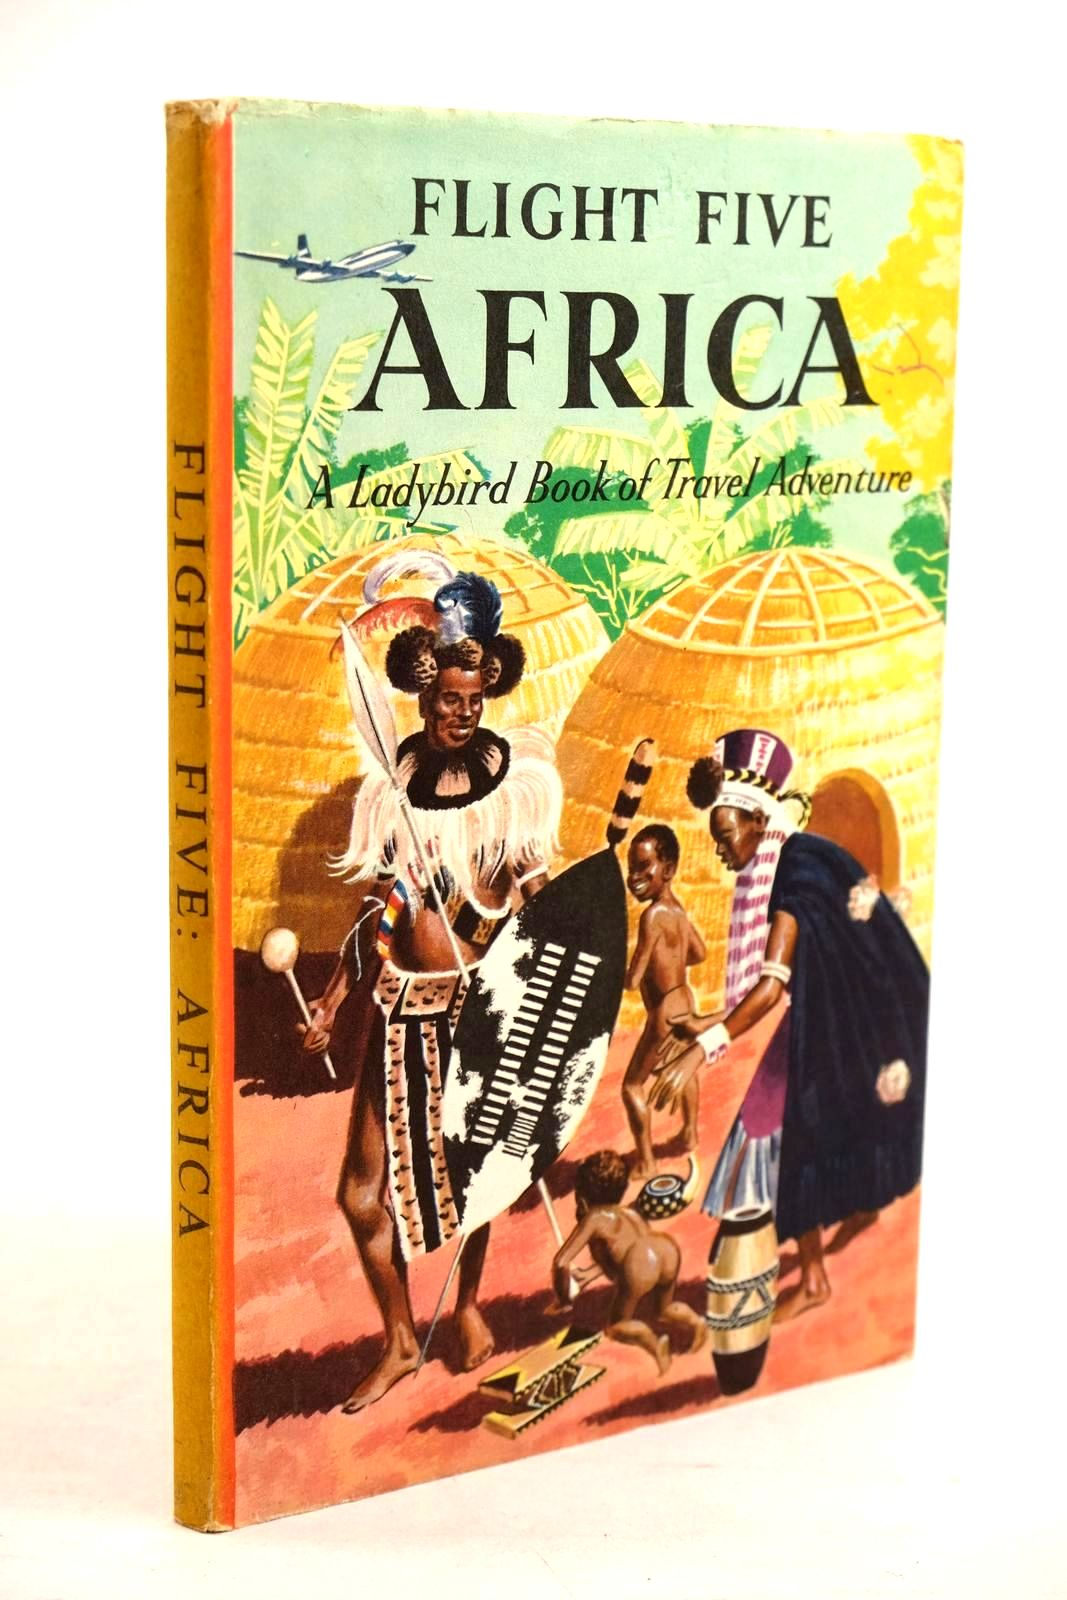 Photo of FLIGHT FIVE: AFRICA written by Daniell, David Scott illustrated by Matthew, Jack published by Wills & Hepworth Ltd. (STOCK CODE: 1320641)  for sale by Stella & Rose's Books